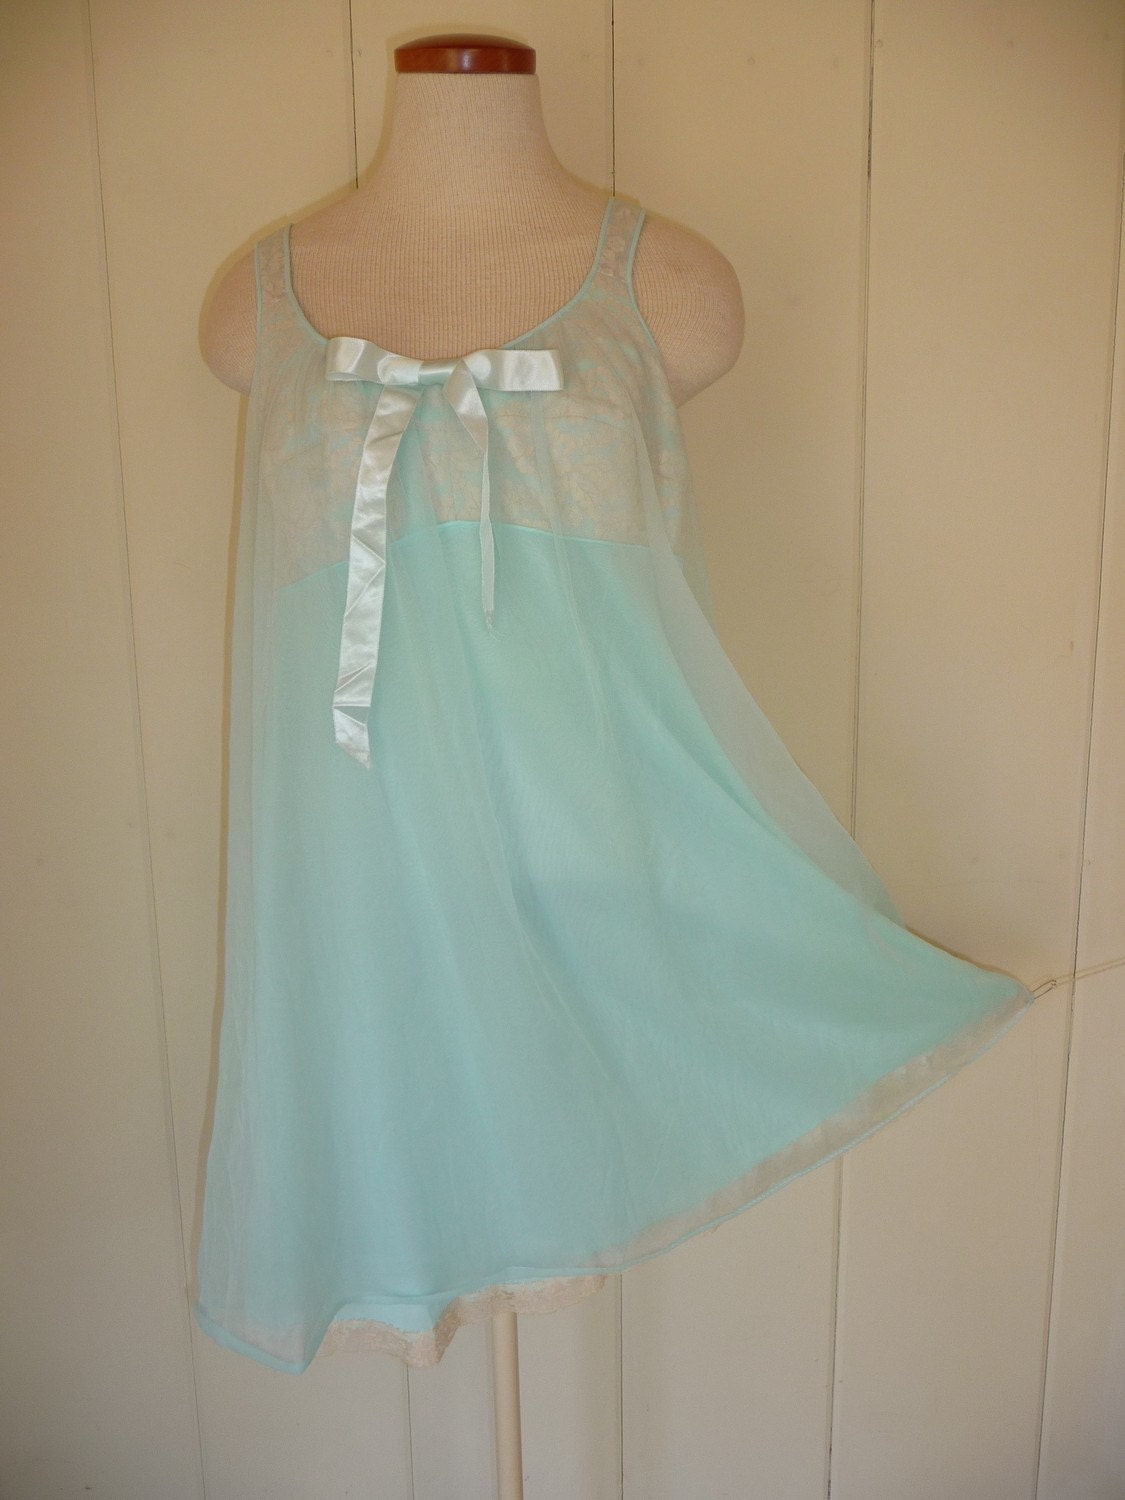 Vintage Powder Blue Sheer Babydoll Nightie Size 38 By Sparcle